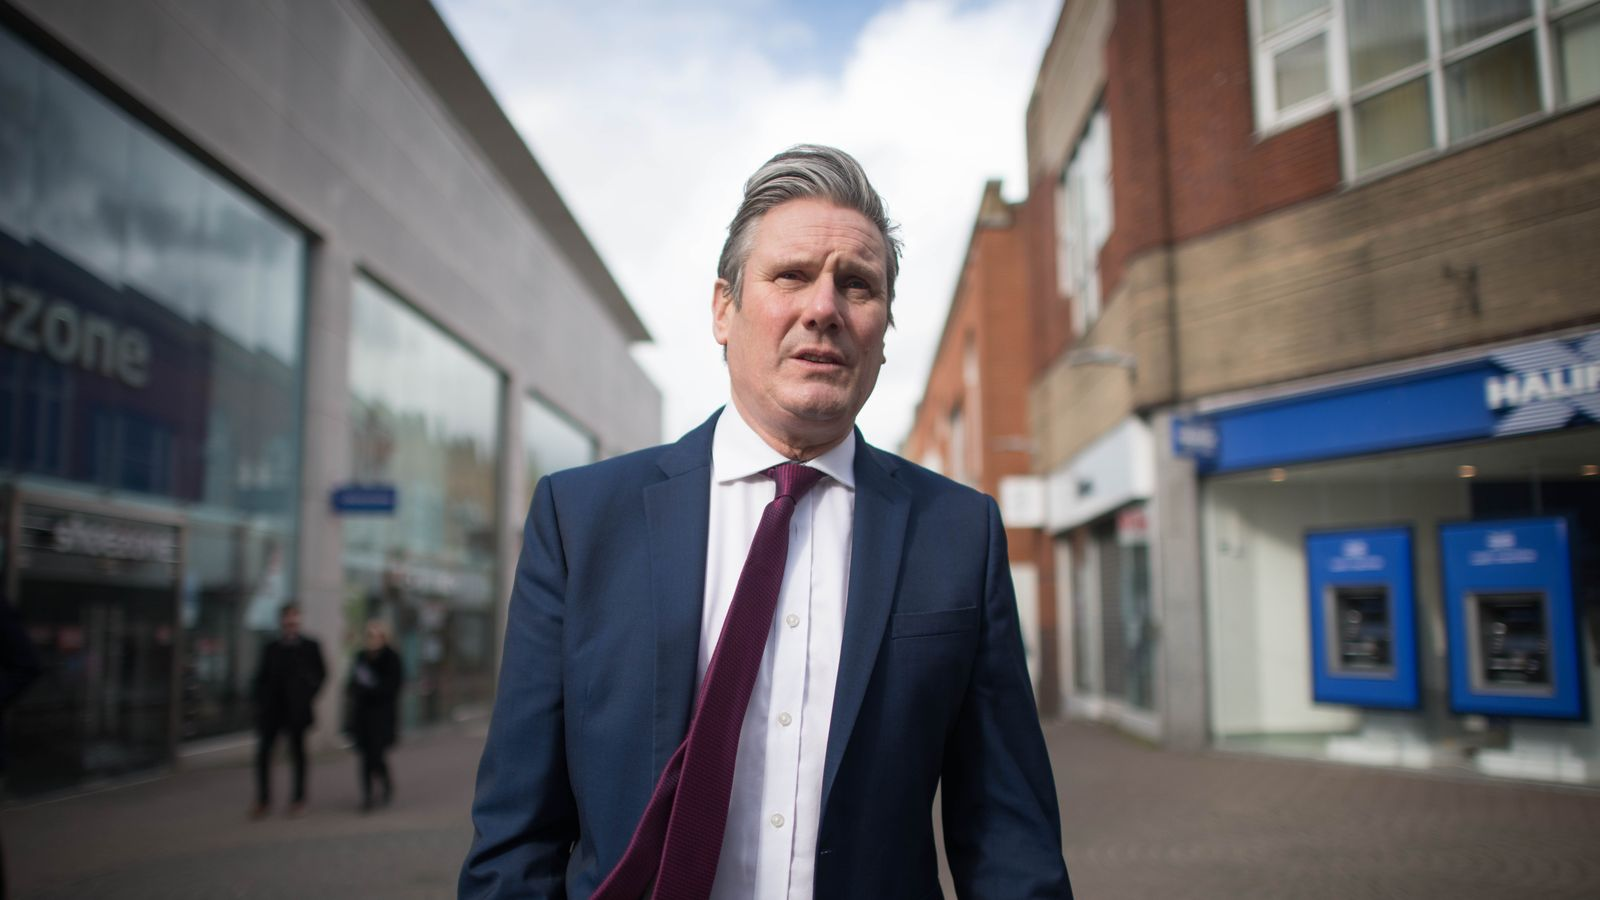 Here We Go: Labour Party Leader Keir Starmer Apologizes for Visiting Church That is Against Homosexuality on Good Friday